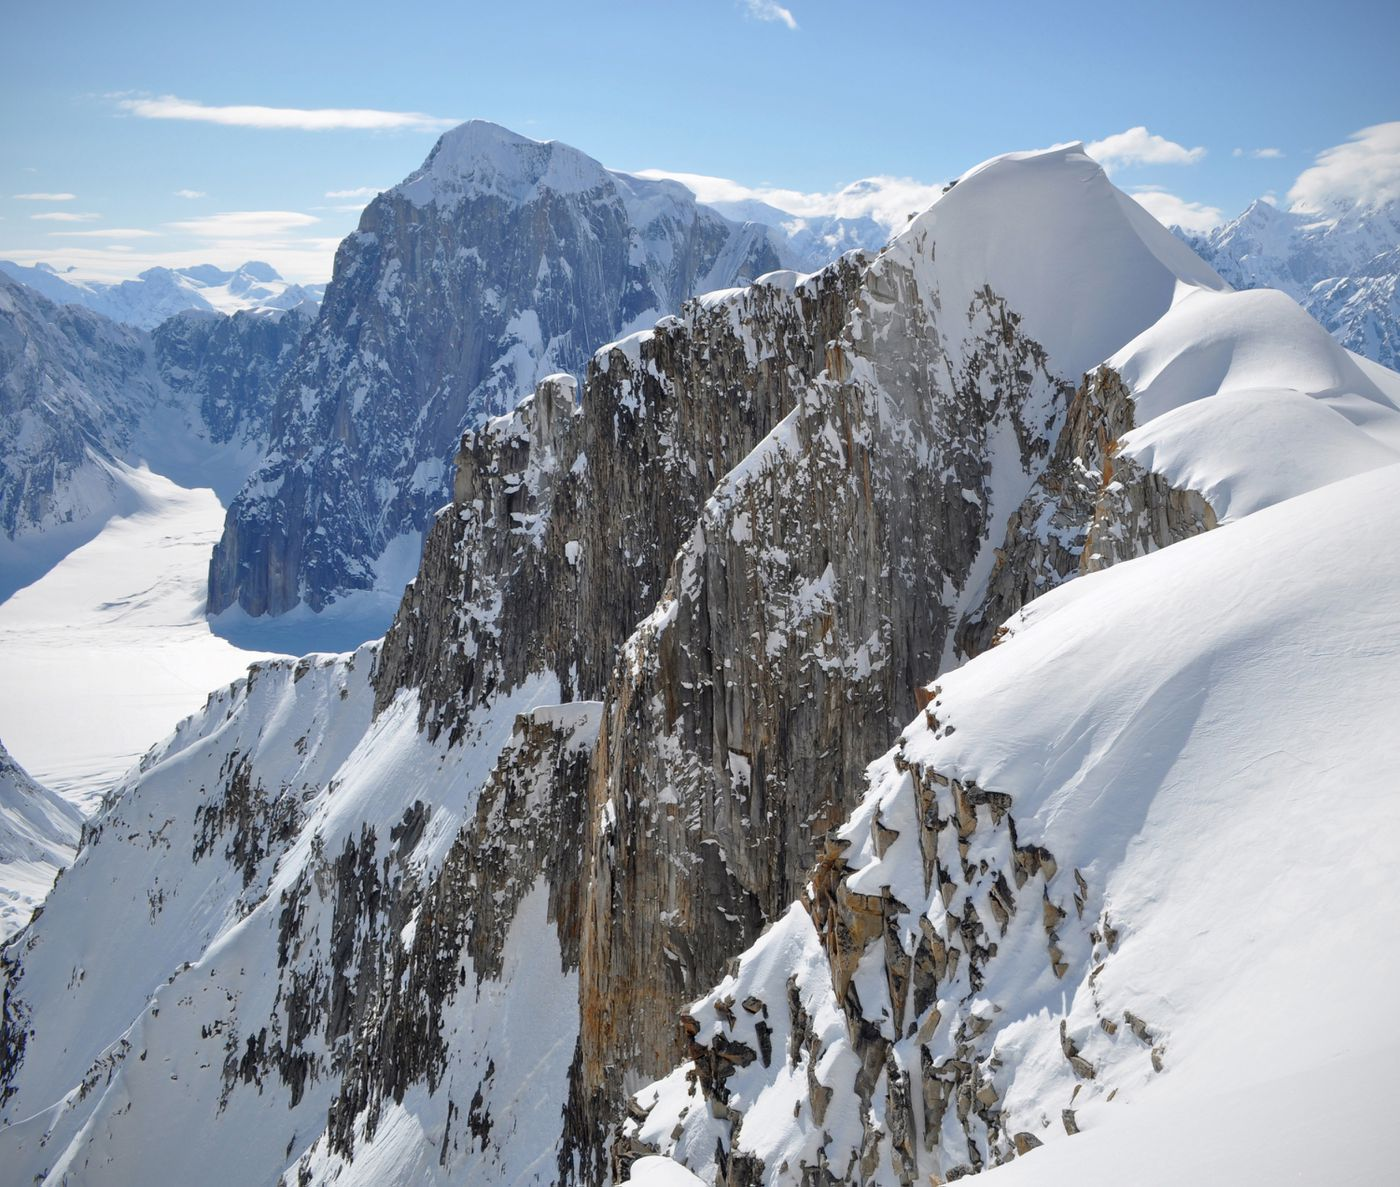 Vertical granite walls drop down from the south side of Root Canal Glacier. Our ski run and campsite were on the gentle, snowy slope on the right of this formation. In the background is 9,945-foot Mount Dickey. Photographed on Tuesday, May 14, 2019. (Vicky Ho / ADN)